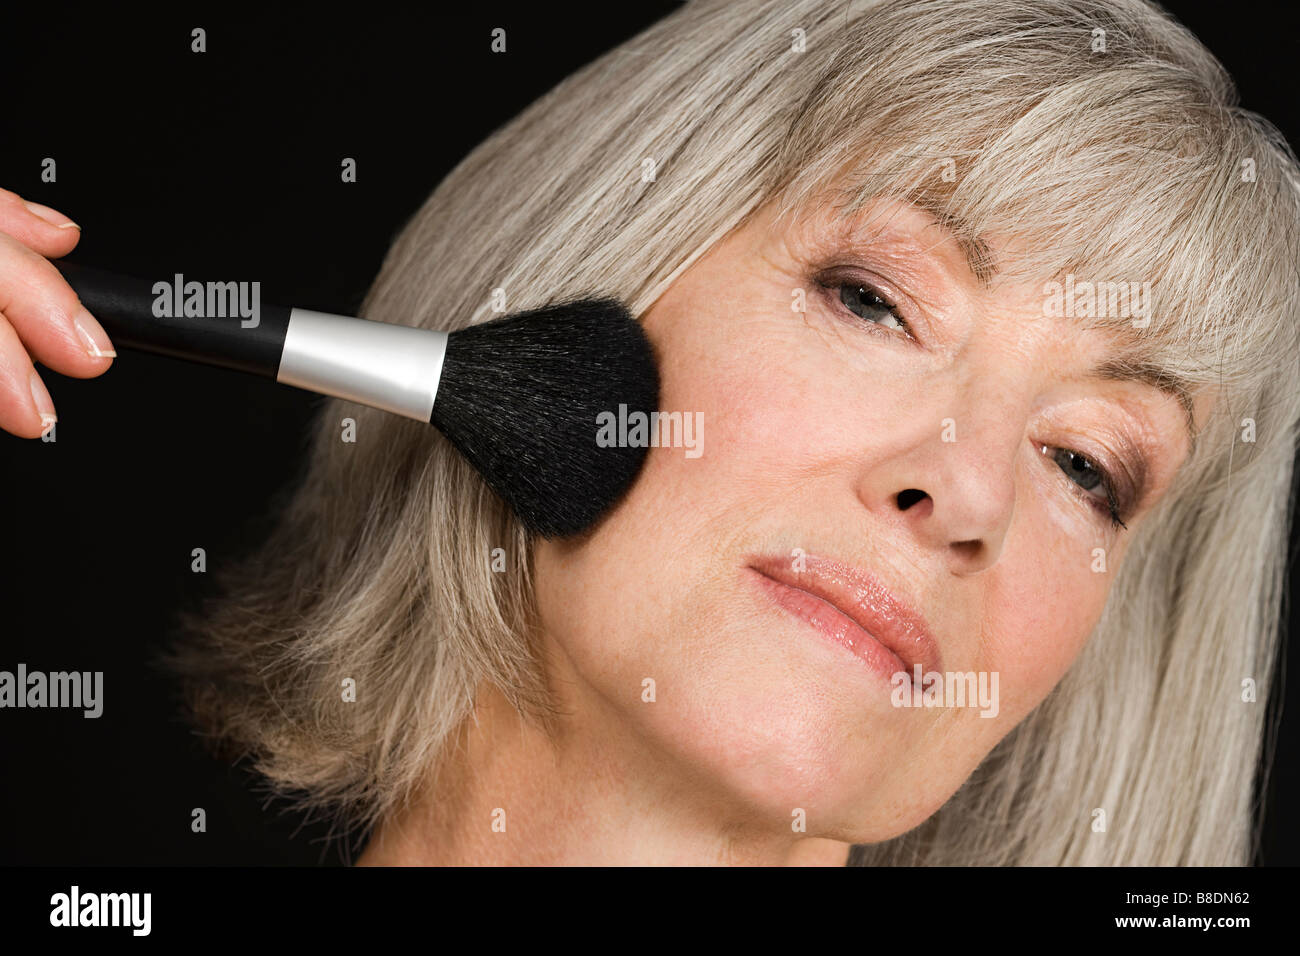 Senior woman applying make up Banque D'Images